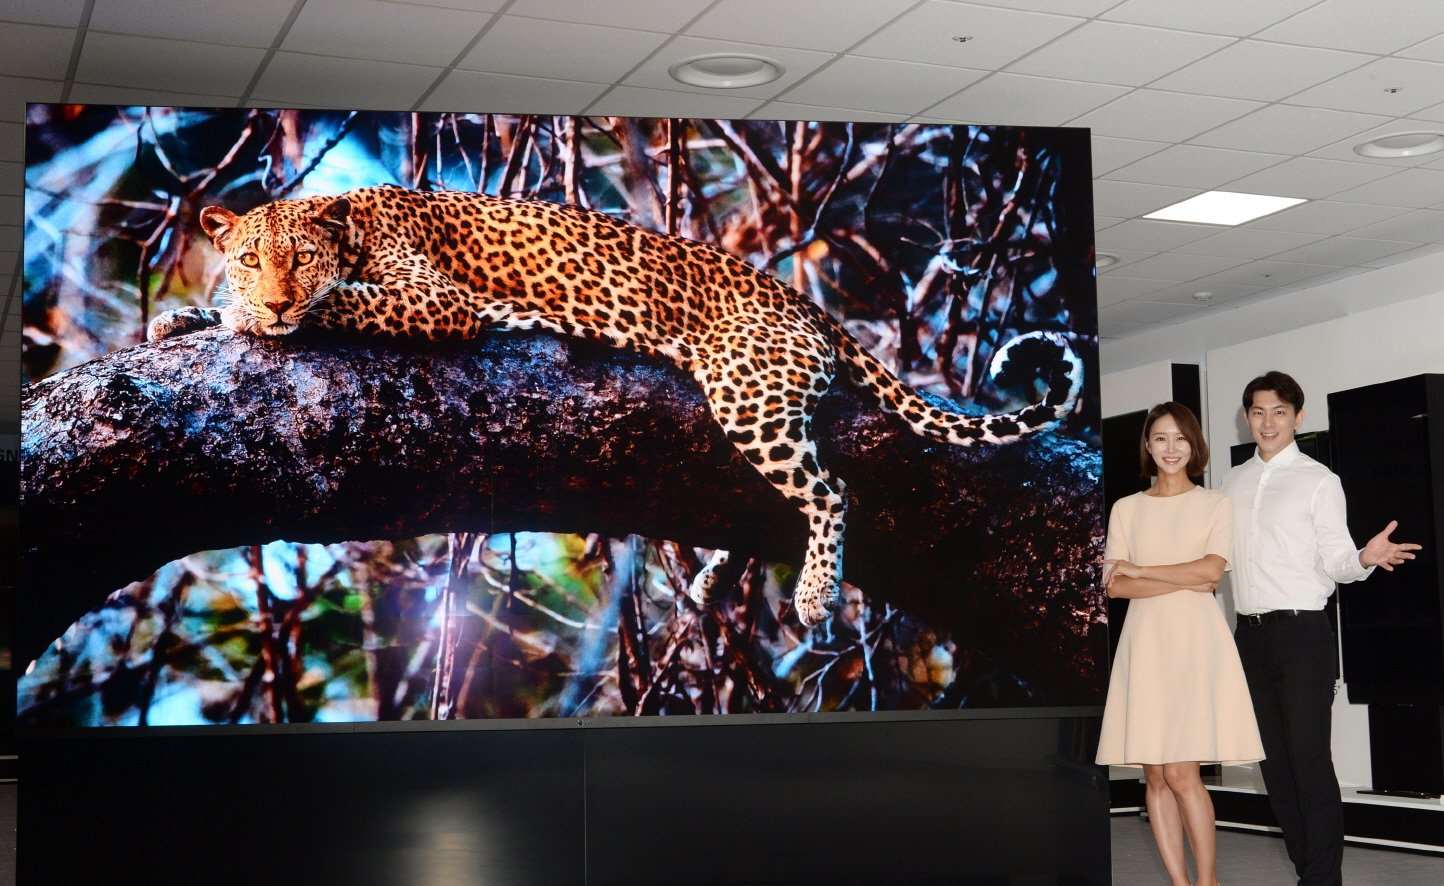 A front view of the LG MAGNIT's screen displaying a majestic leopard with a man and woman posing beside it